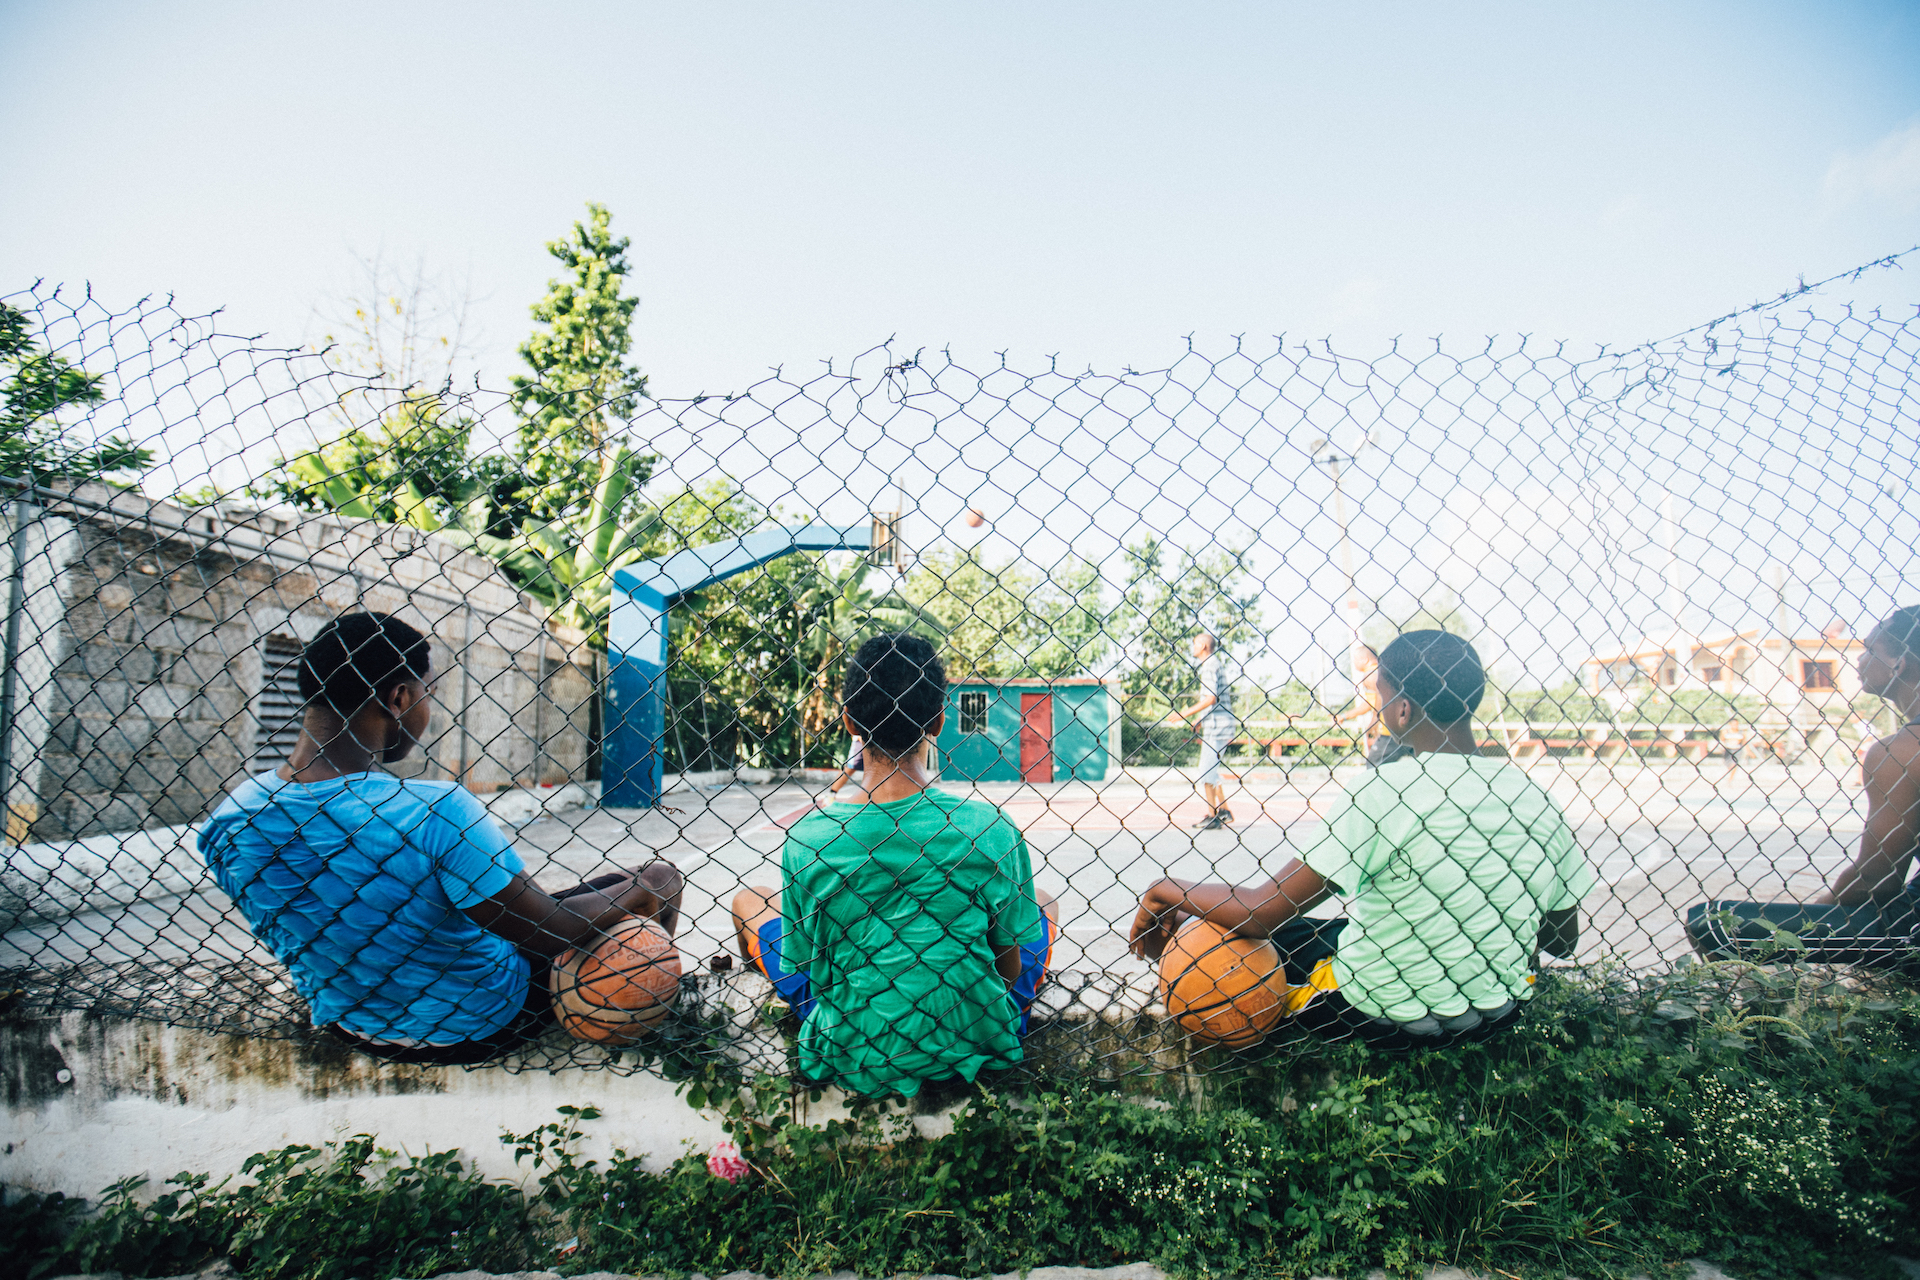 Three boys sit on the ground with their backs to the camera, leaning against a chain link fence. They are looking at a basketball court, holding basketballs.